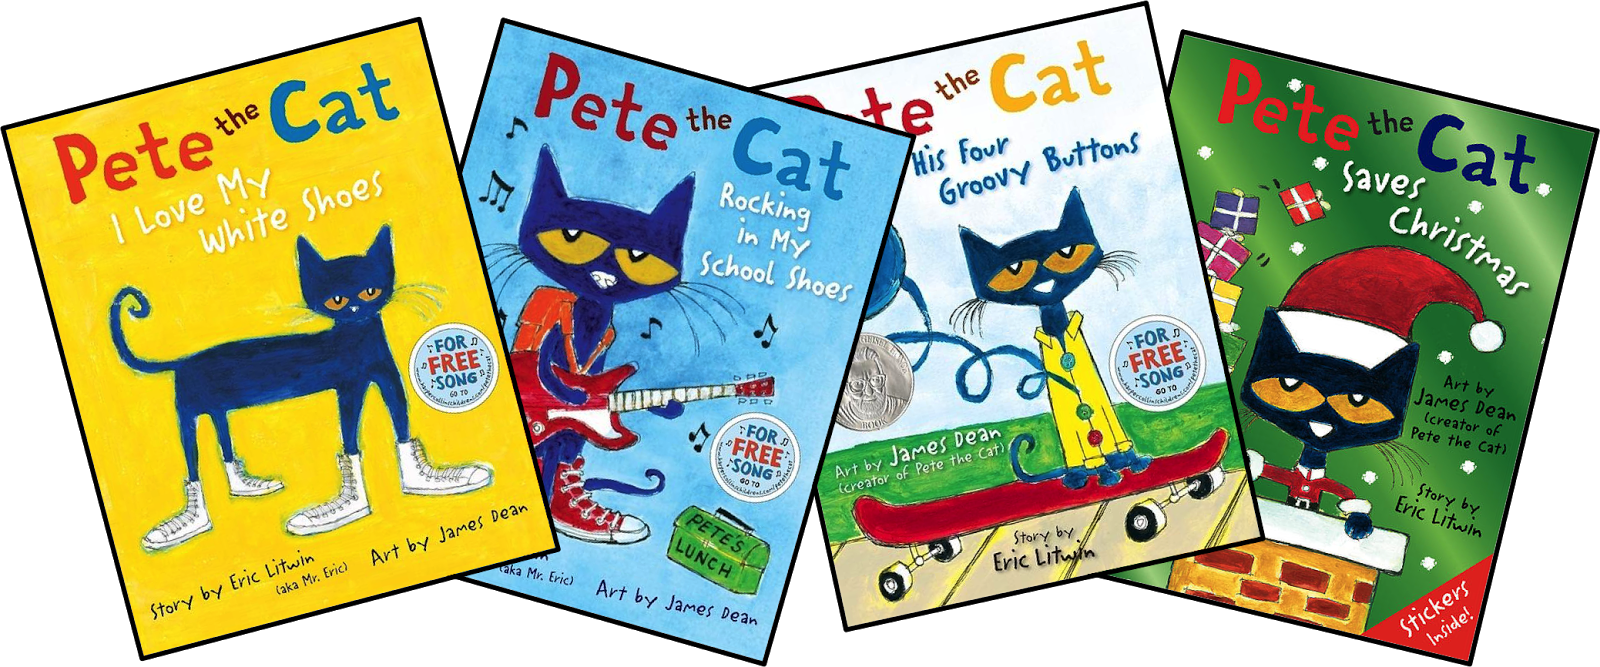 Pete the cat and his four groovy buttons clipart clipart royalty free download A Spoonful of Learning: Eric Litwin's Newest Book and CONTEST!!! clipart royalty free download